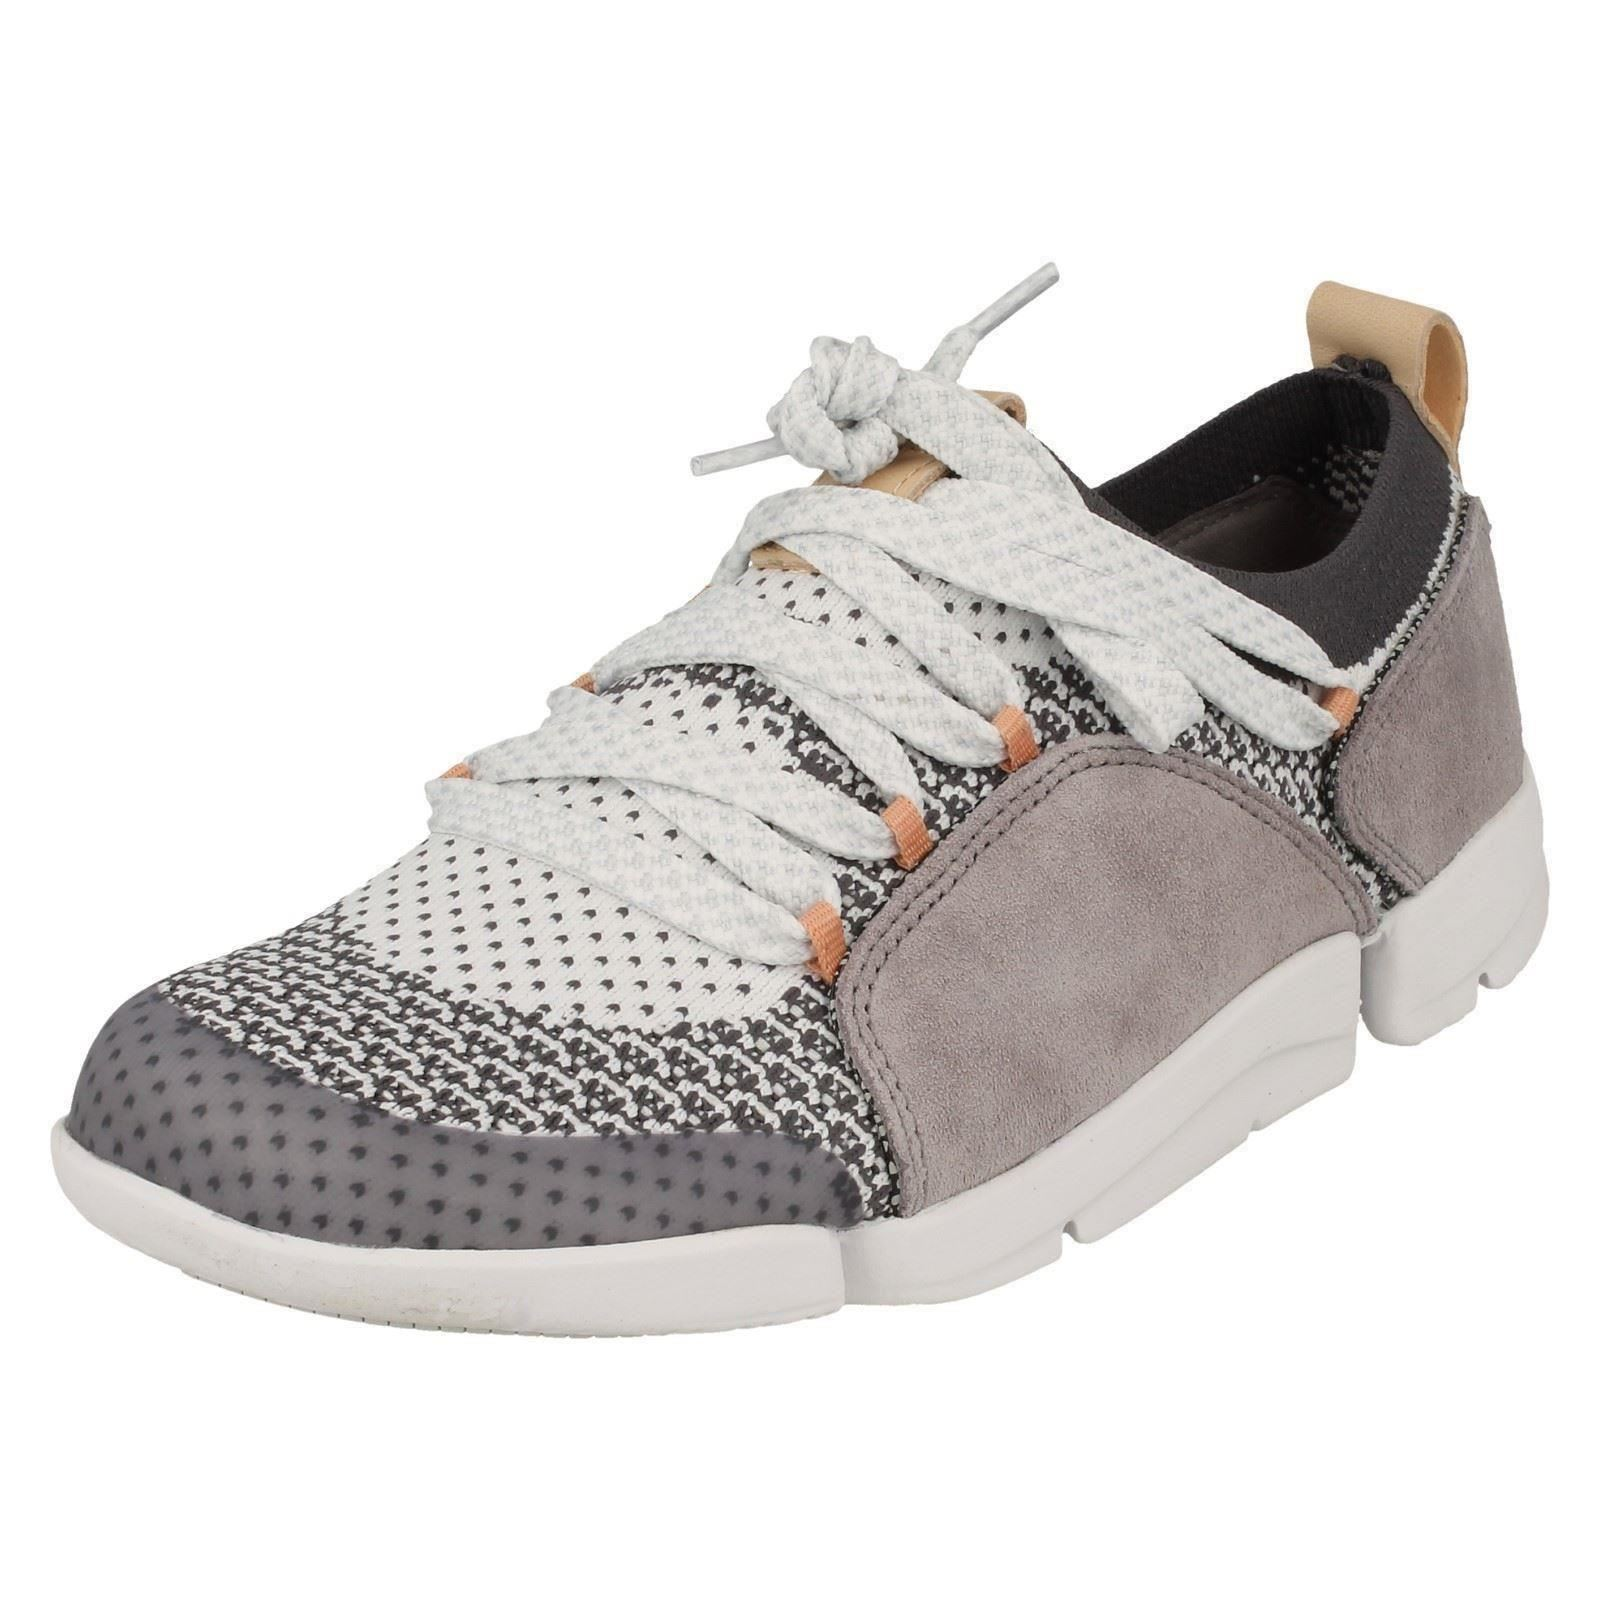 b85709285f58f Ladies Clarks Stylish Lace up Trainers Tri Amelia UK 3 Grey D. About this  product. Picture 1 of 10  Picture 2 of 10 ...